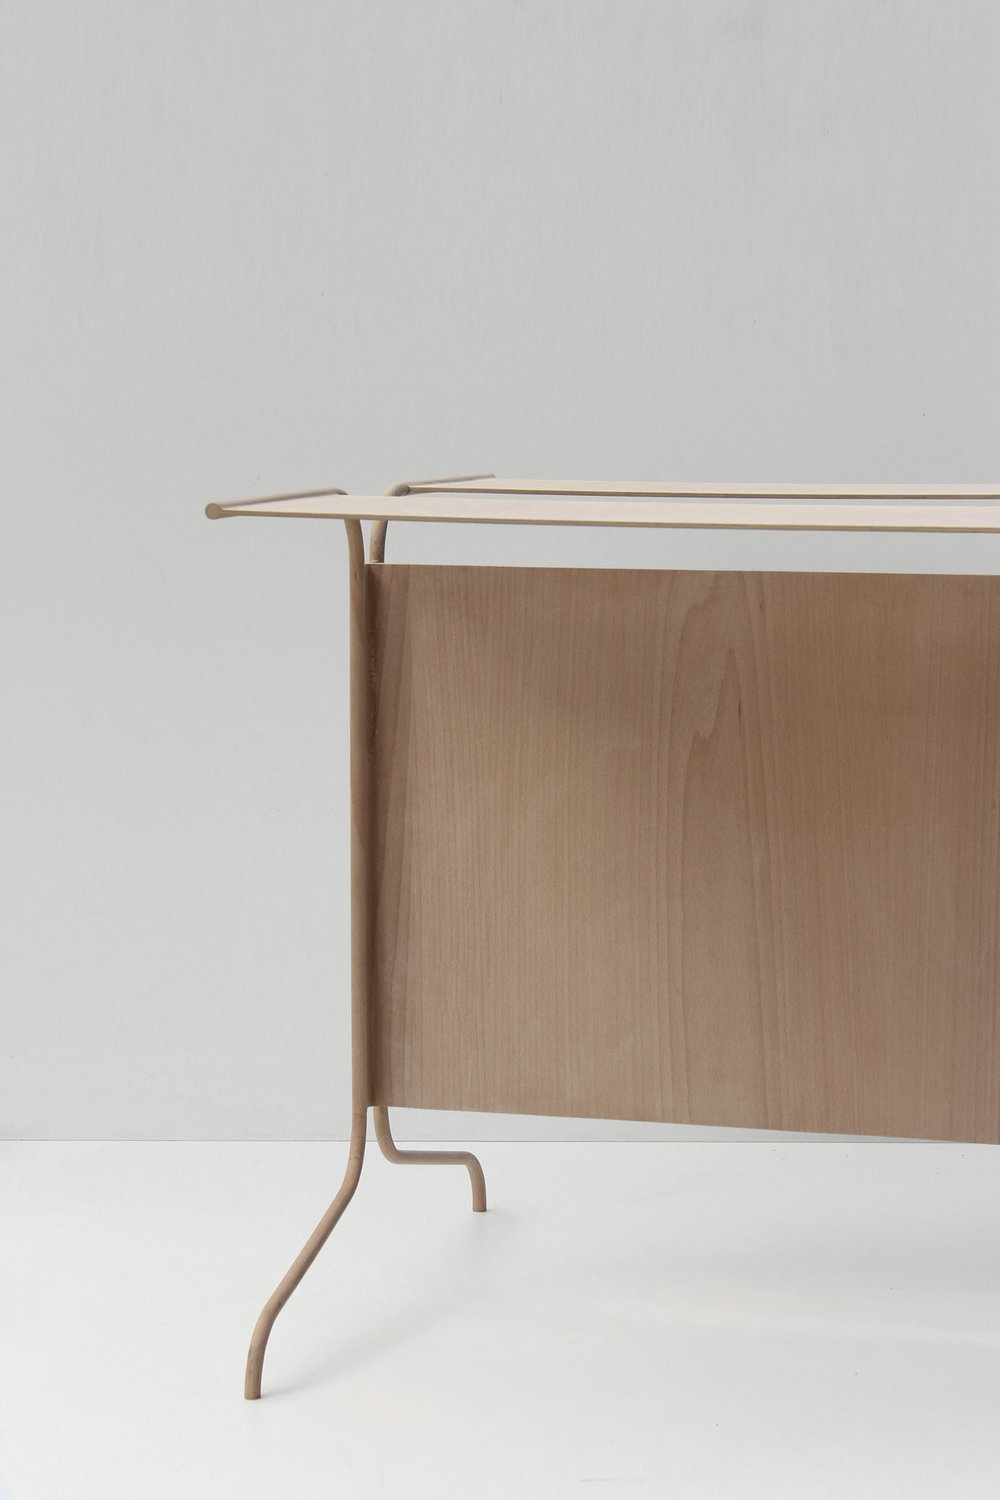 Linear Wood designed by Christian Heikoop